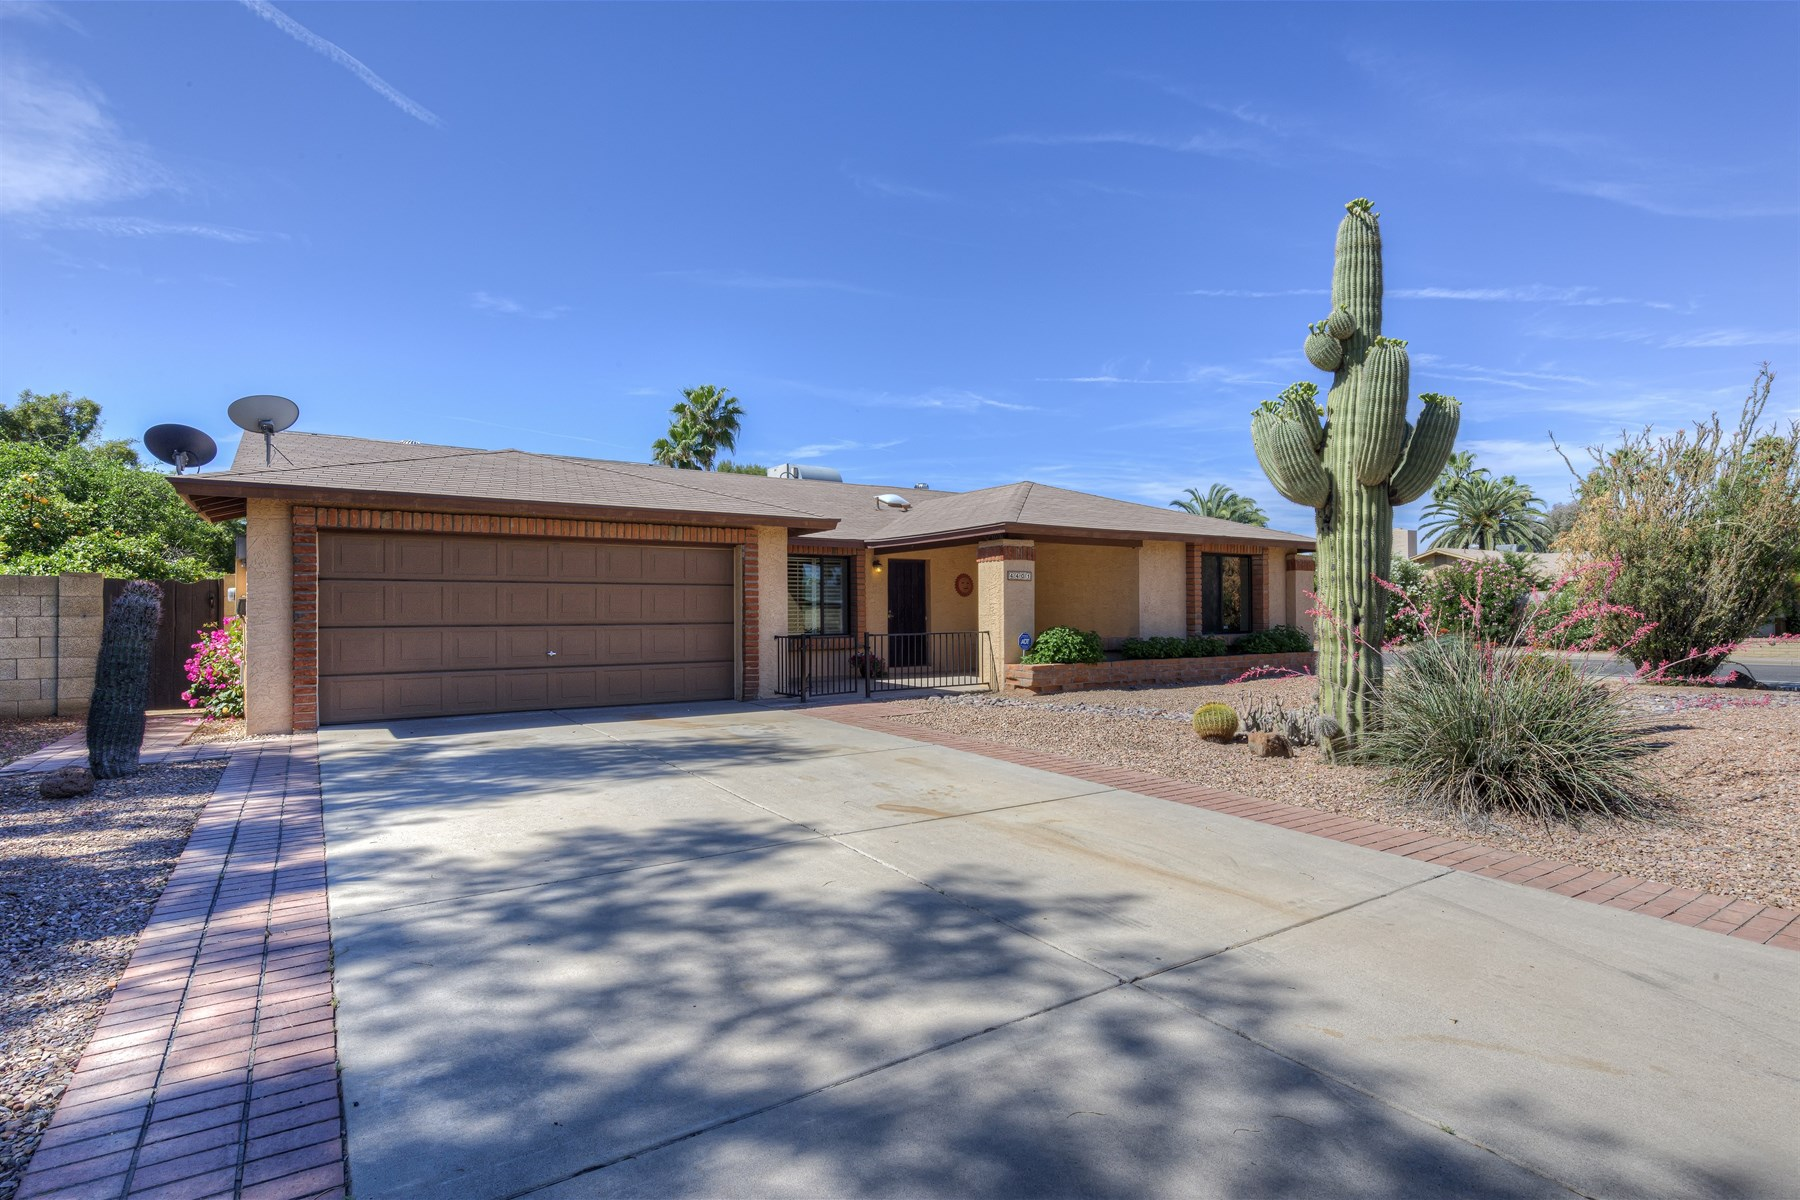 Single Family Home for Sale at Recently updated in 2015 4401 E SHEENA DR Phoenix, Arizona 85032 United States